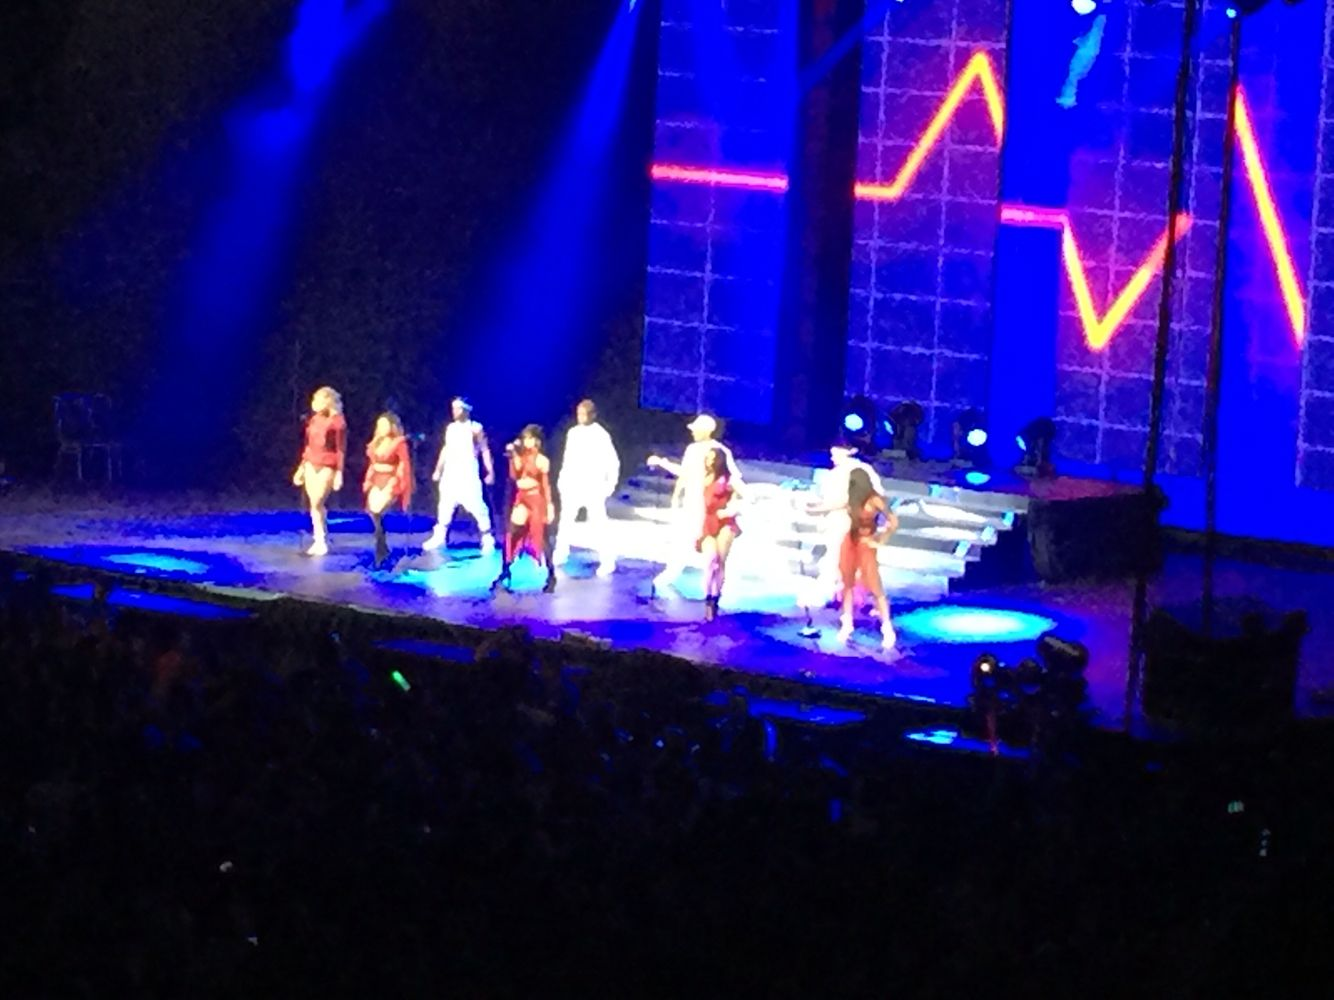 Fifth Harmony on stage